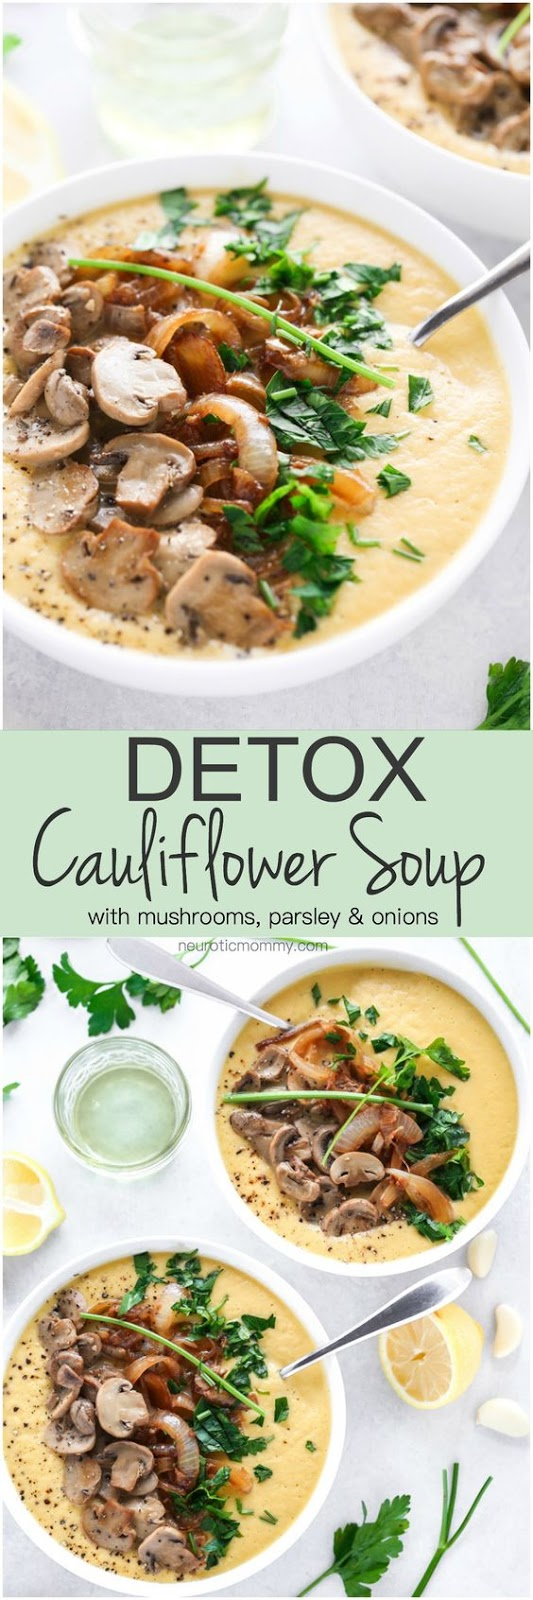 ★★★★★ 1939 Ratings :  DETOX CAULIFLOWER SOUP #Instantpot #Bangbang #Shrimp #Pasta #vegan #Vegetables #Vegetablessoup #Easydinner #Healthydinner #Dessert #Choco #Keto #Cookies #Cherry #World #foodoftheworld #pasta #pastarecipes #dinner #dinnerideas #dinnerrecipes #Healthyrecipe